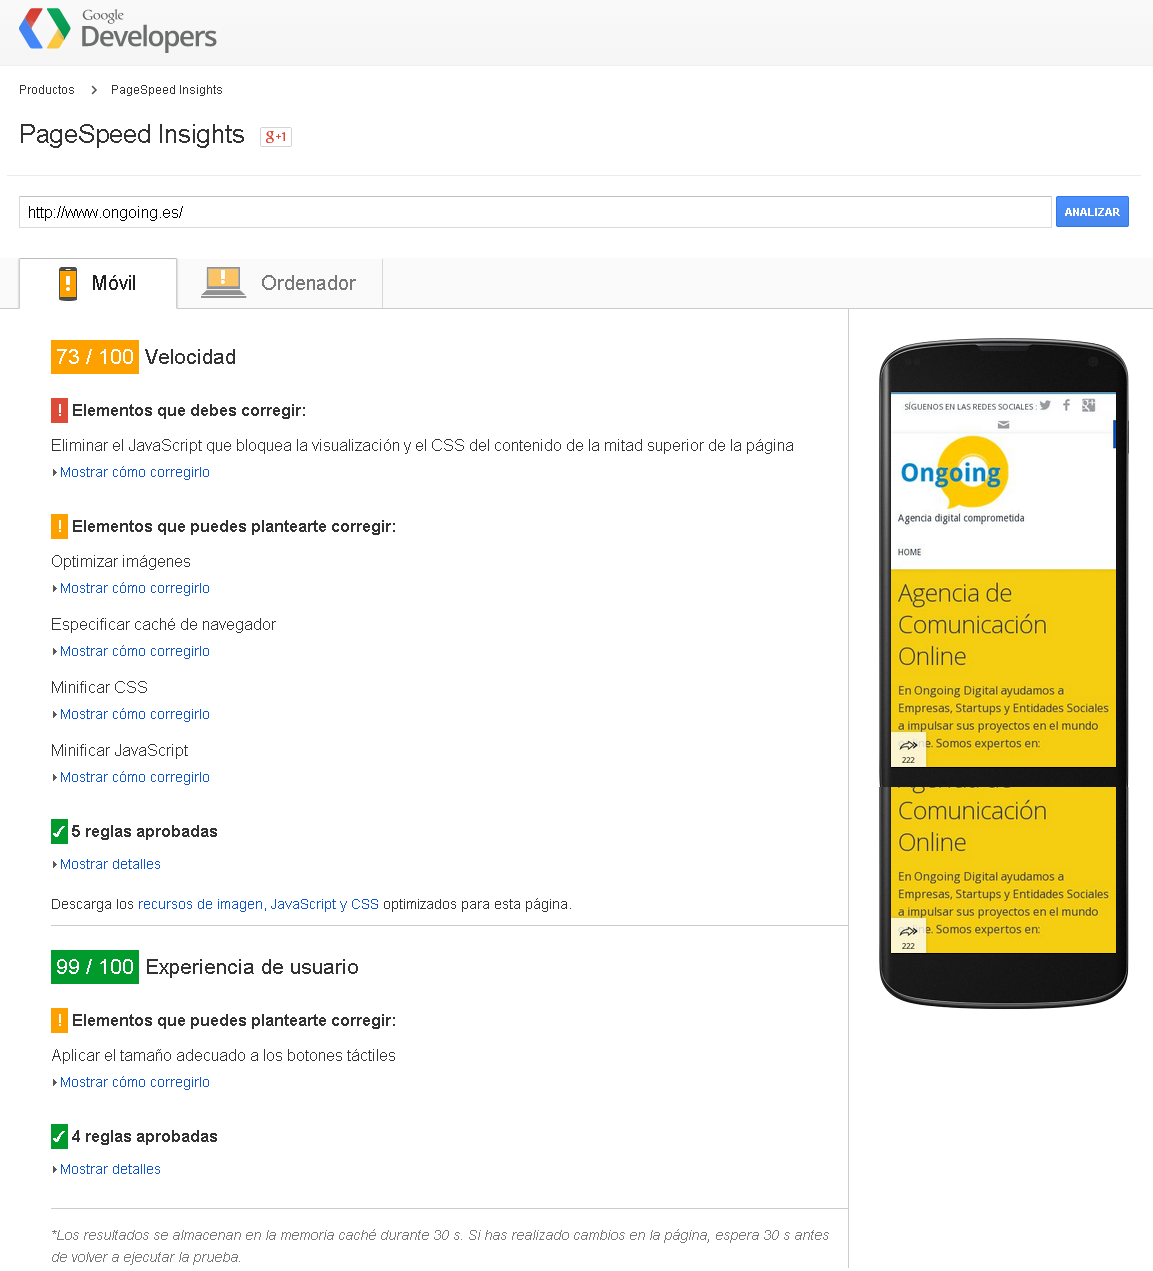 PageSpeed Insights - Ongoing Movil